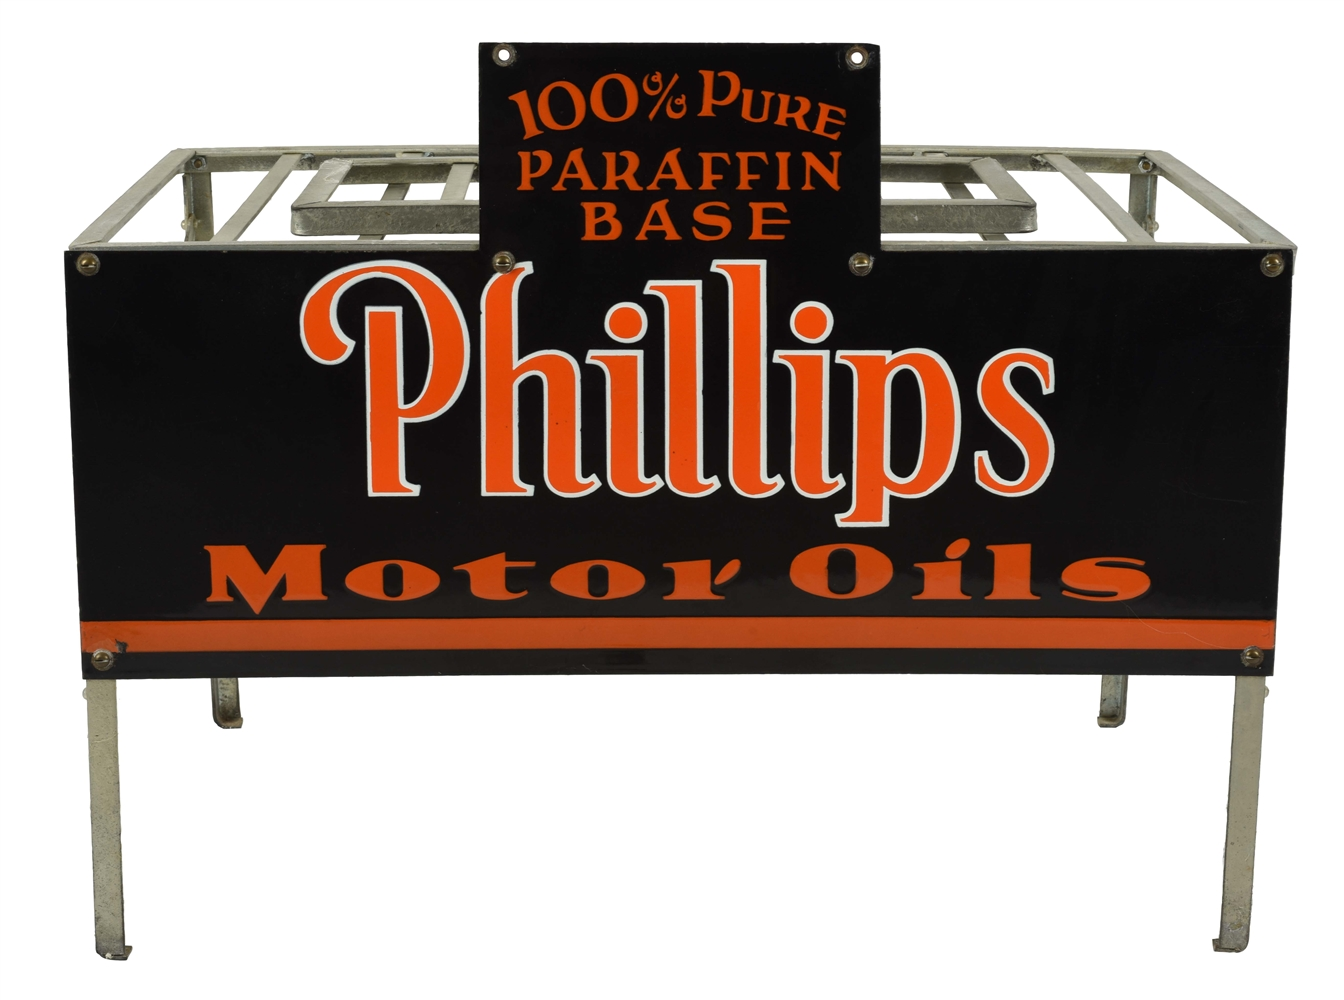 RARE PHILLIPS 66 MOTOR OILS PORCELAIN RACK SIGN WITH ORIGINAL METAL RACK.